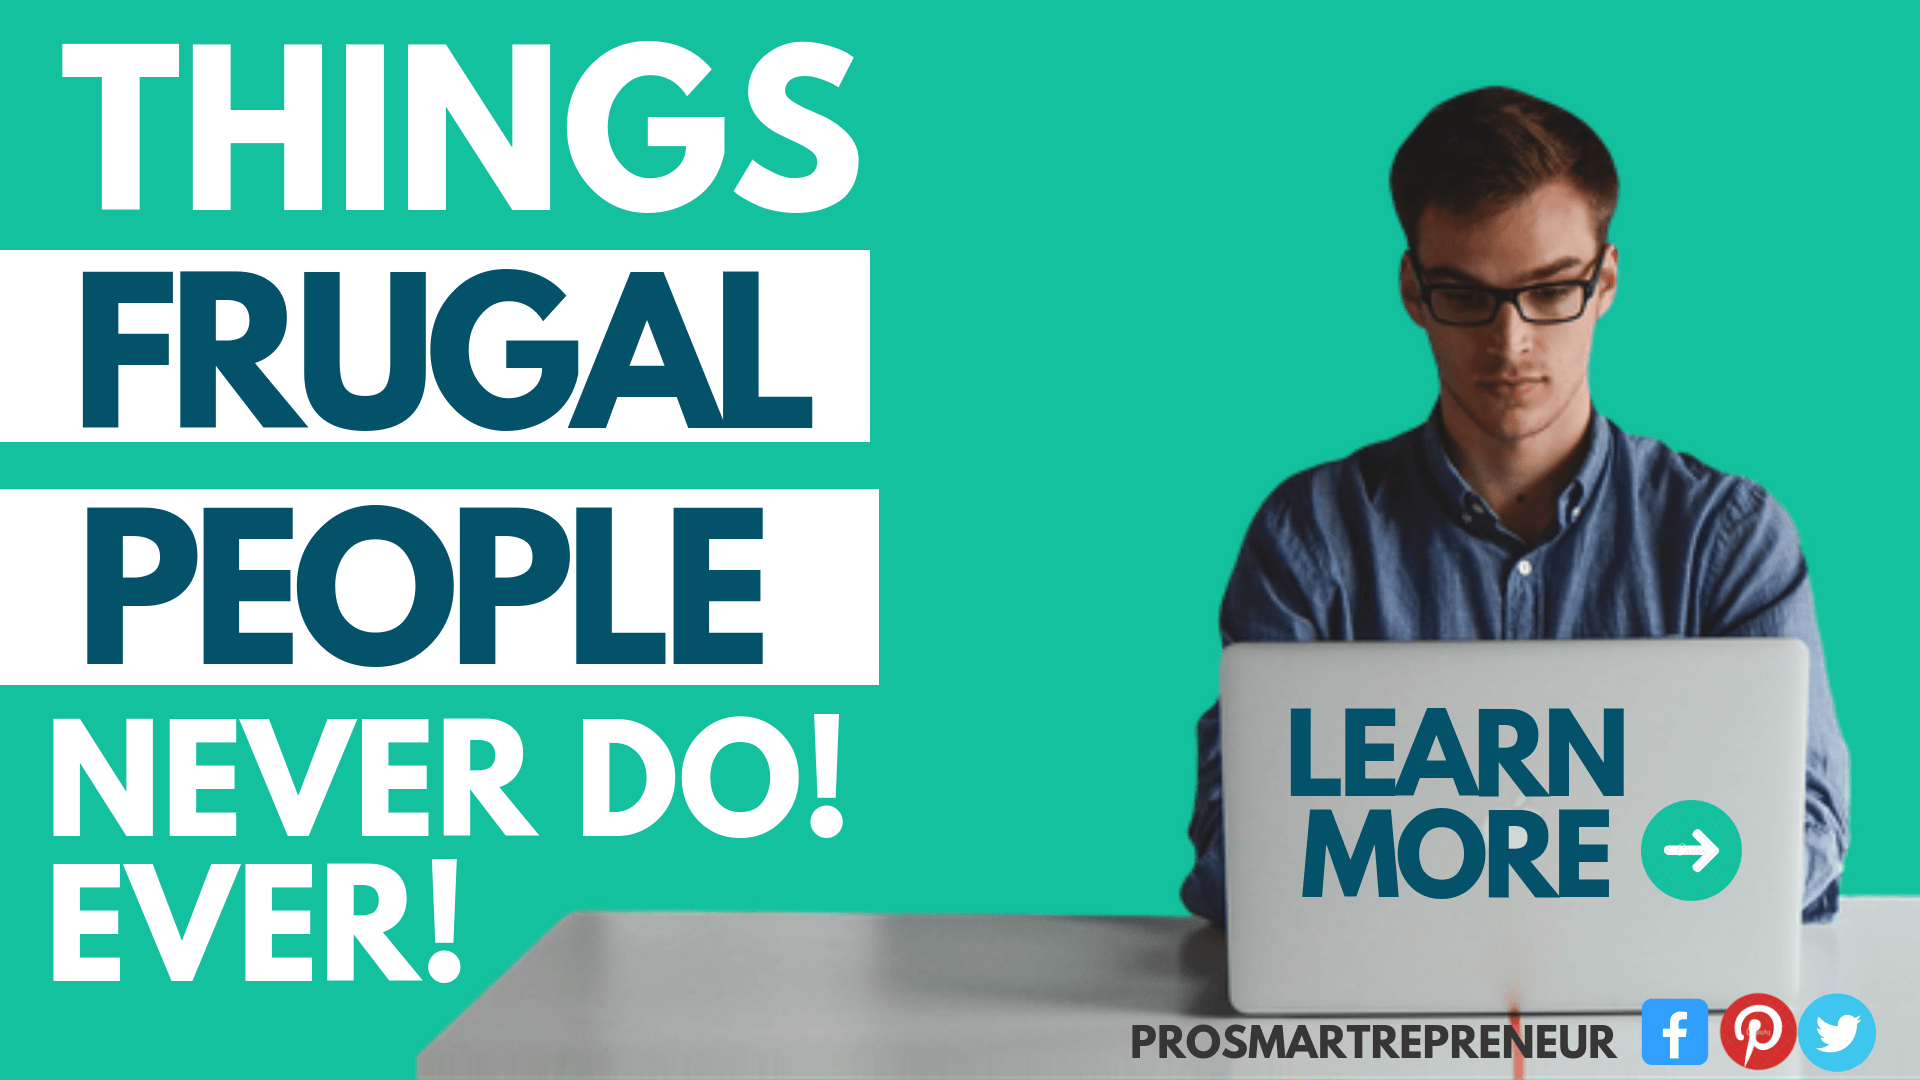 10 Things Frugal People Don't Do